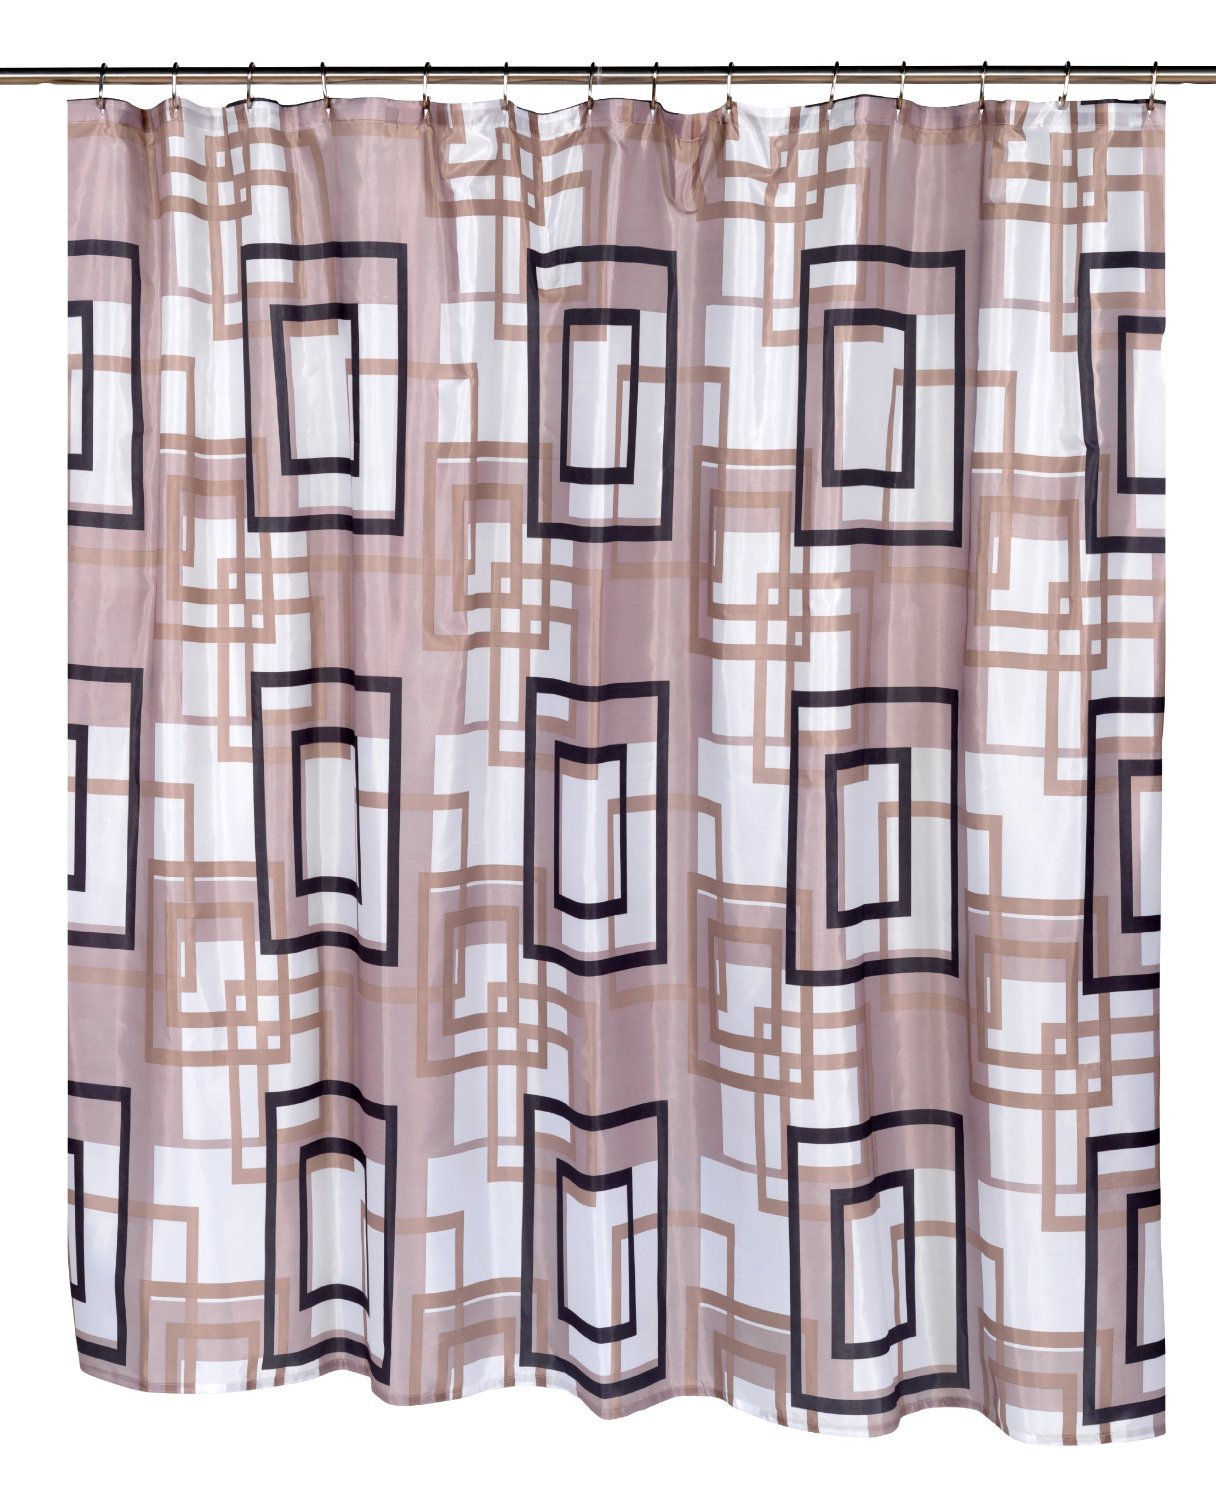 108 Inch Wide Shower Curtain Cheap 72 Inch Wide Fabric Find 72 Inch Wide Fabric Deals On Line